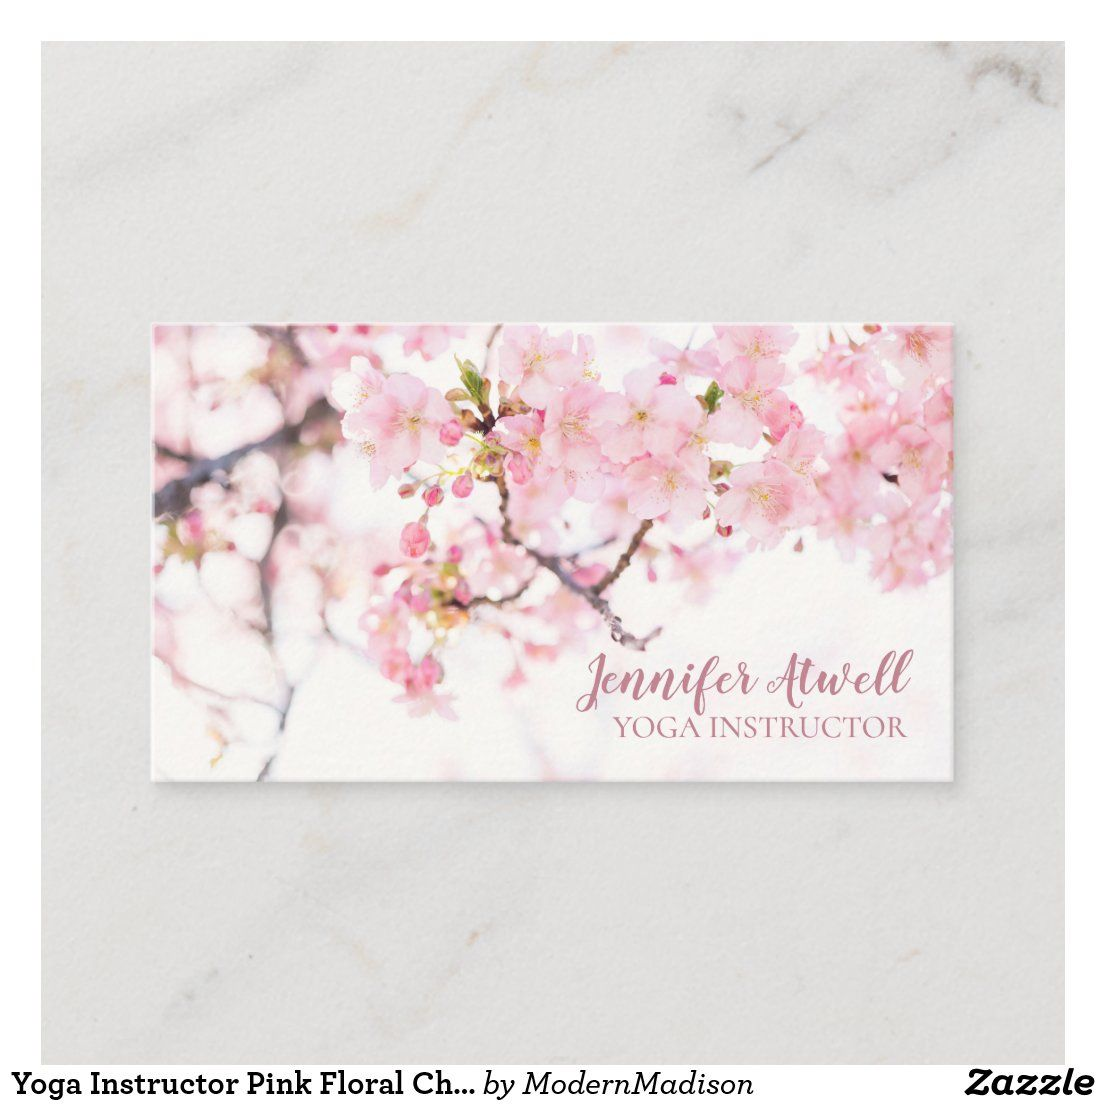 Yoga Instructor Pink Floral Cherry Blossom Trees Business Card Zazzle Com In 2021 Cherry Blossom Tree Blossom Trees Floral Business Cards